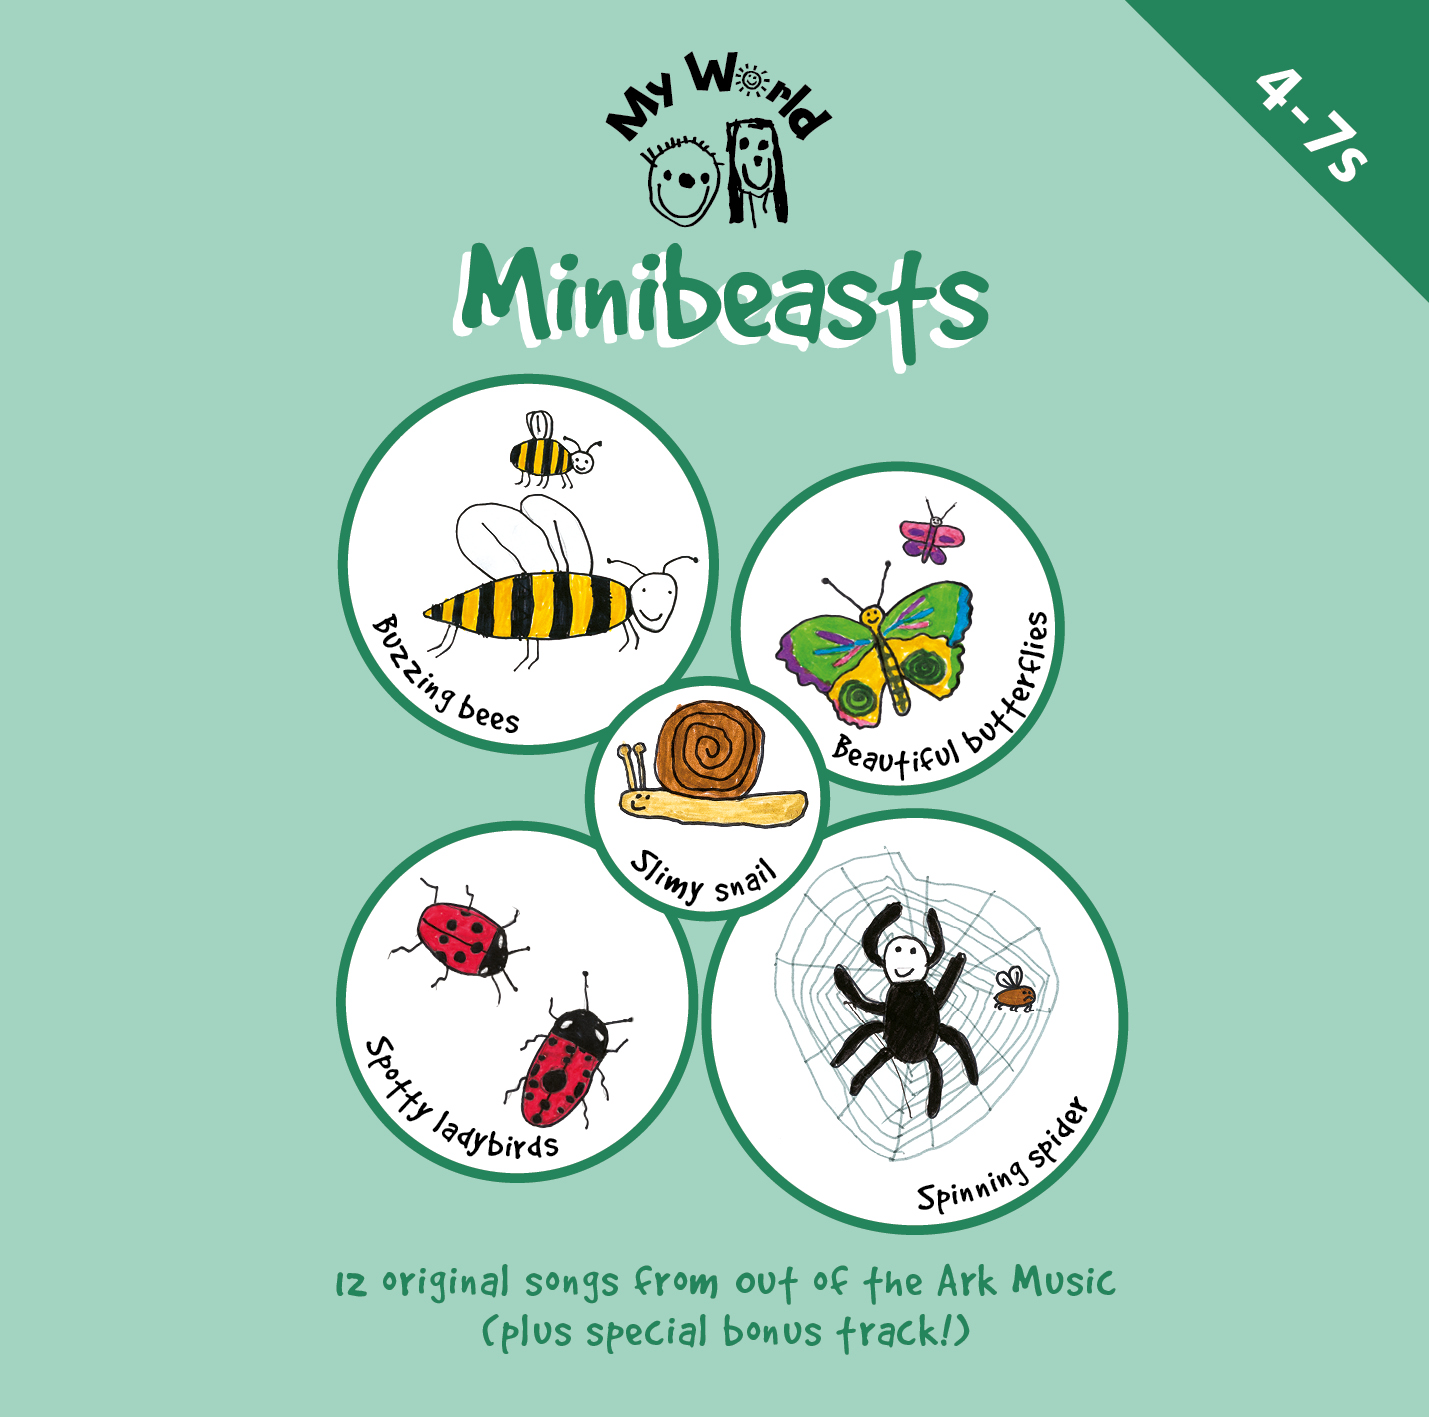 Minibeasts Songbook Out Of The Ark Music